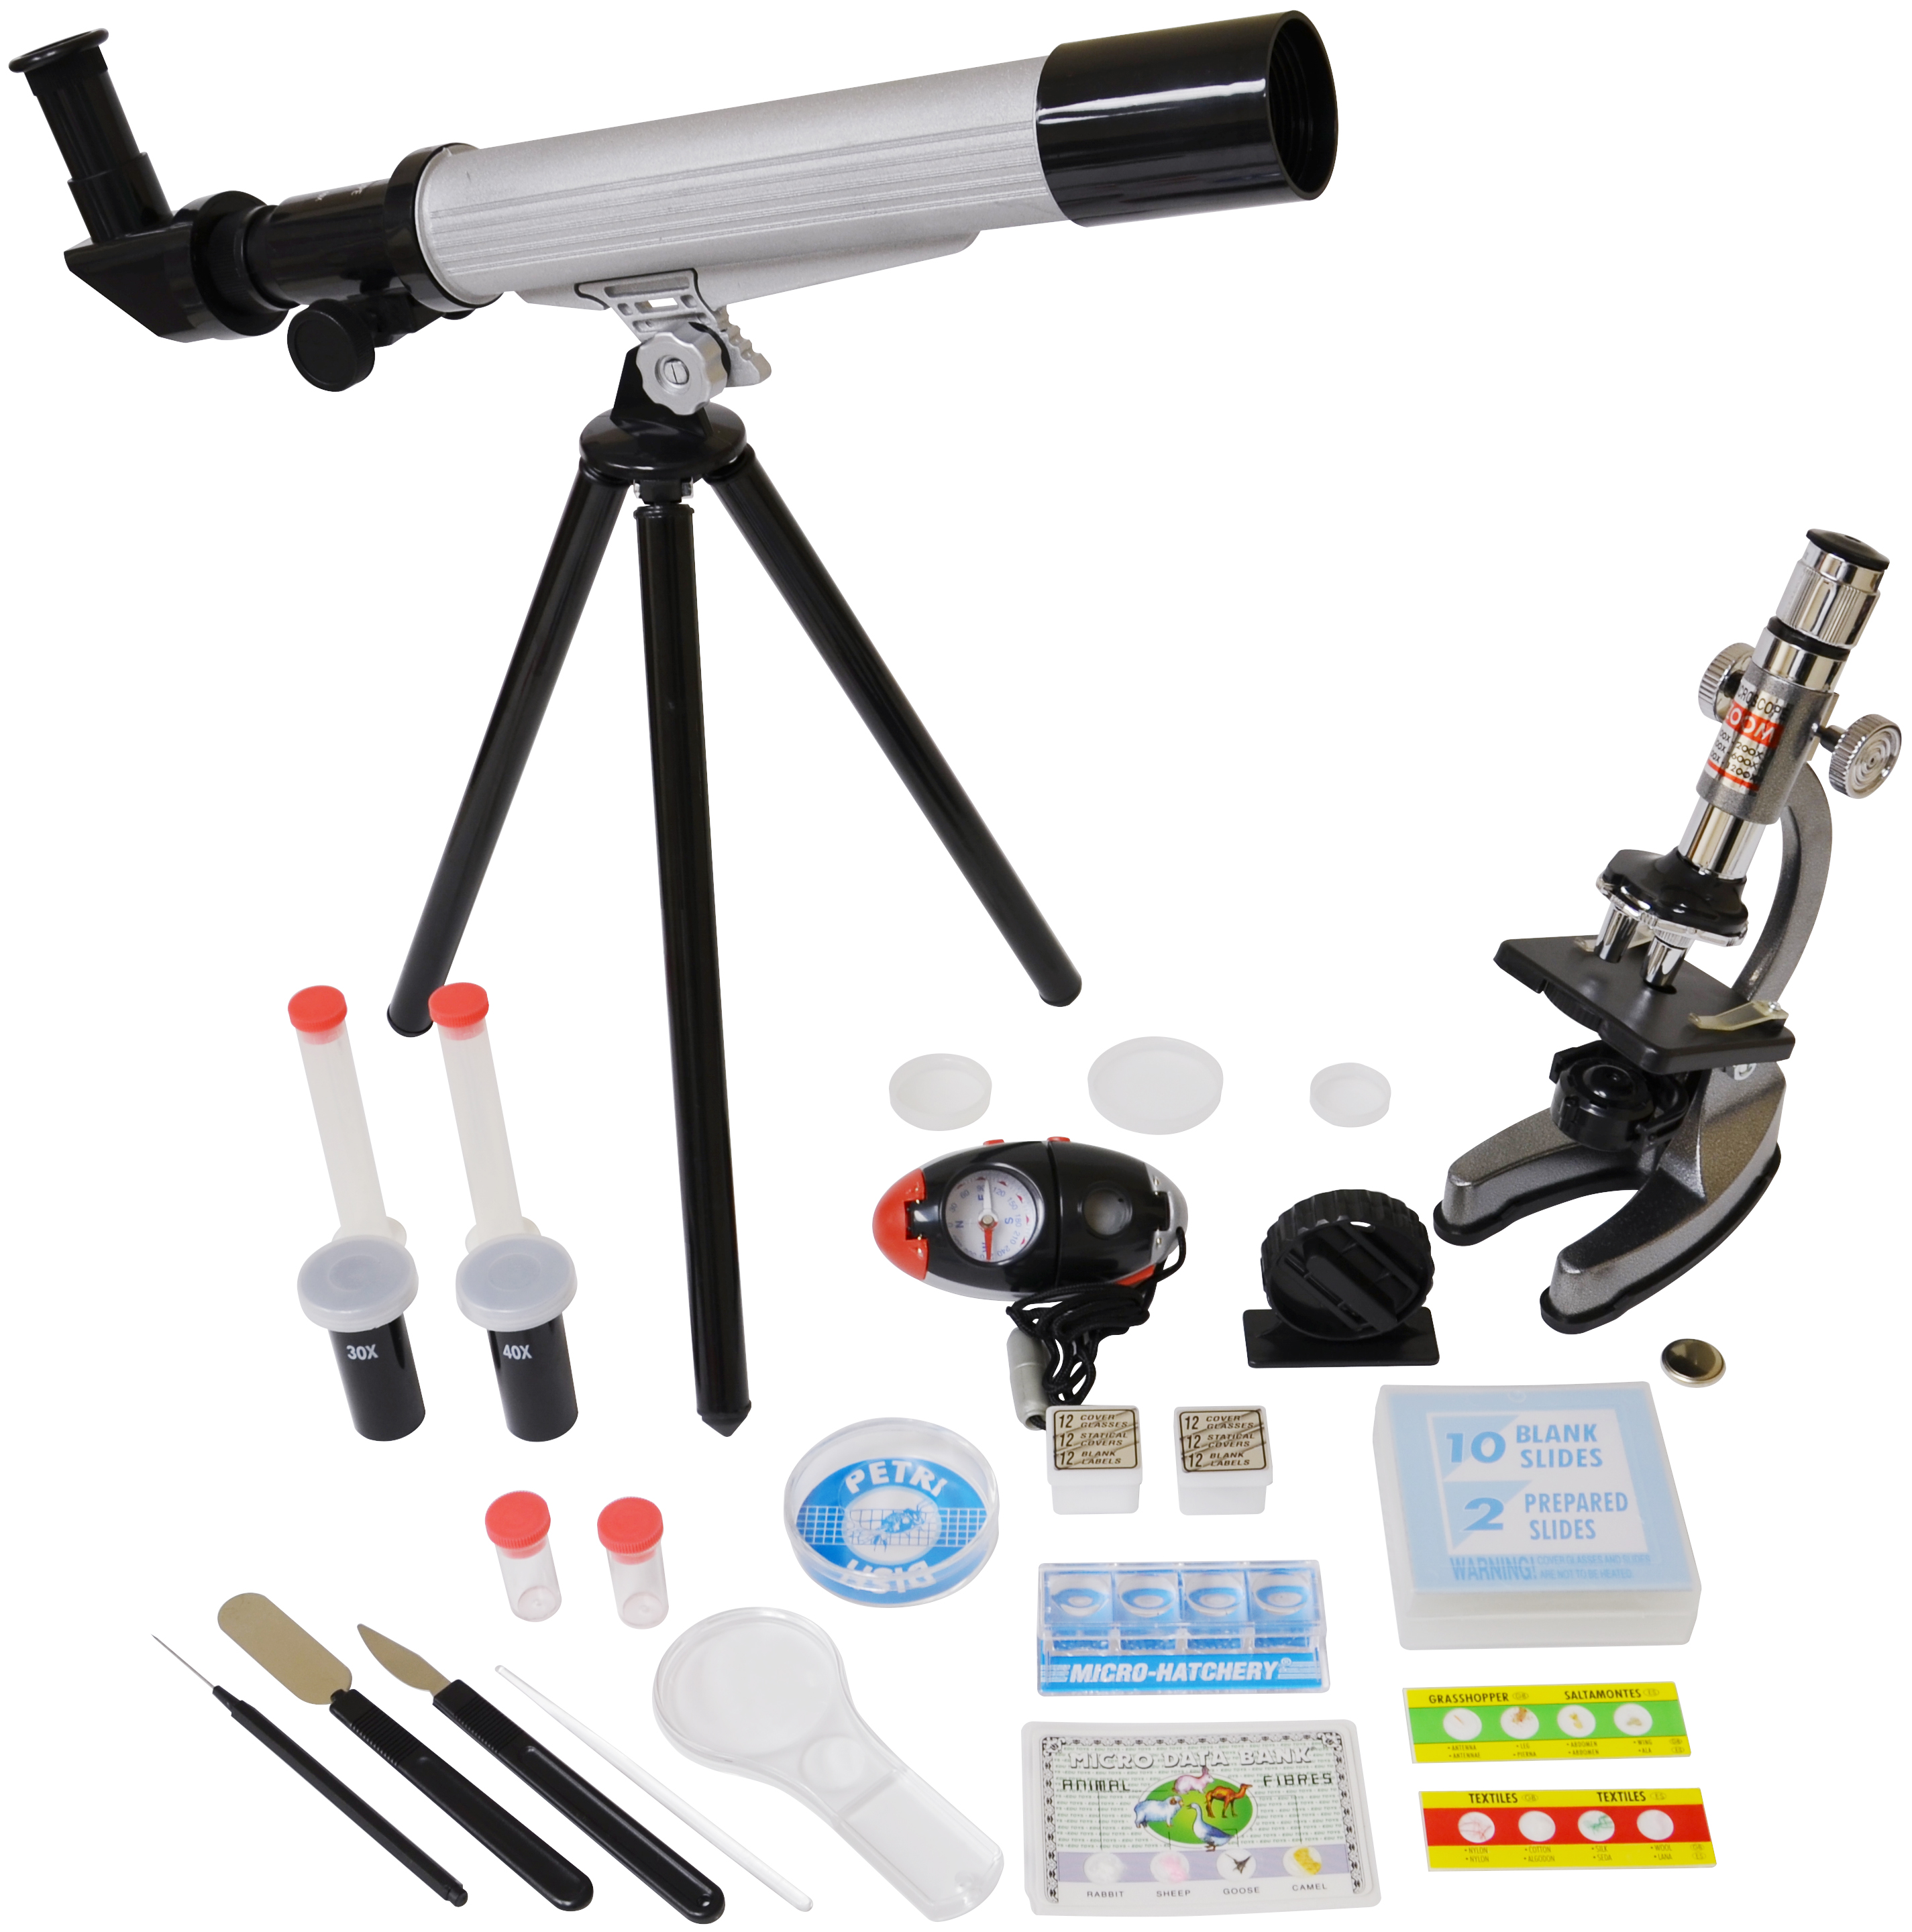 Elenco Microscope & Telescope with Survival Kit